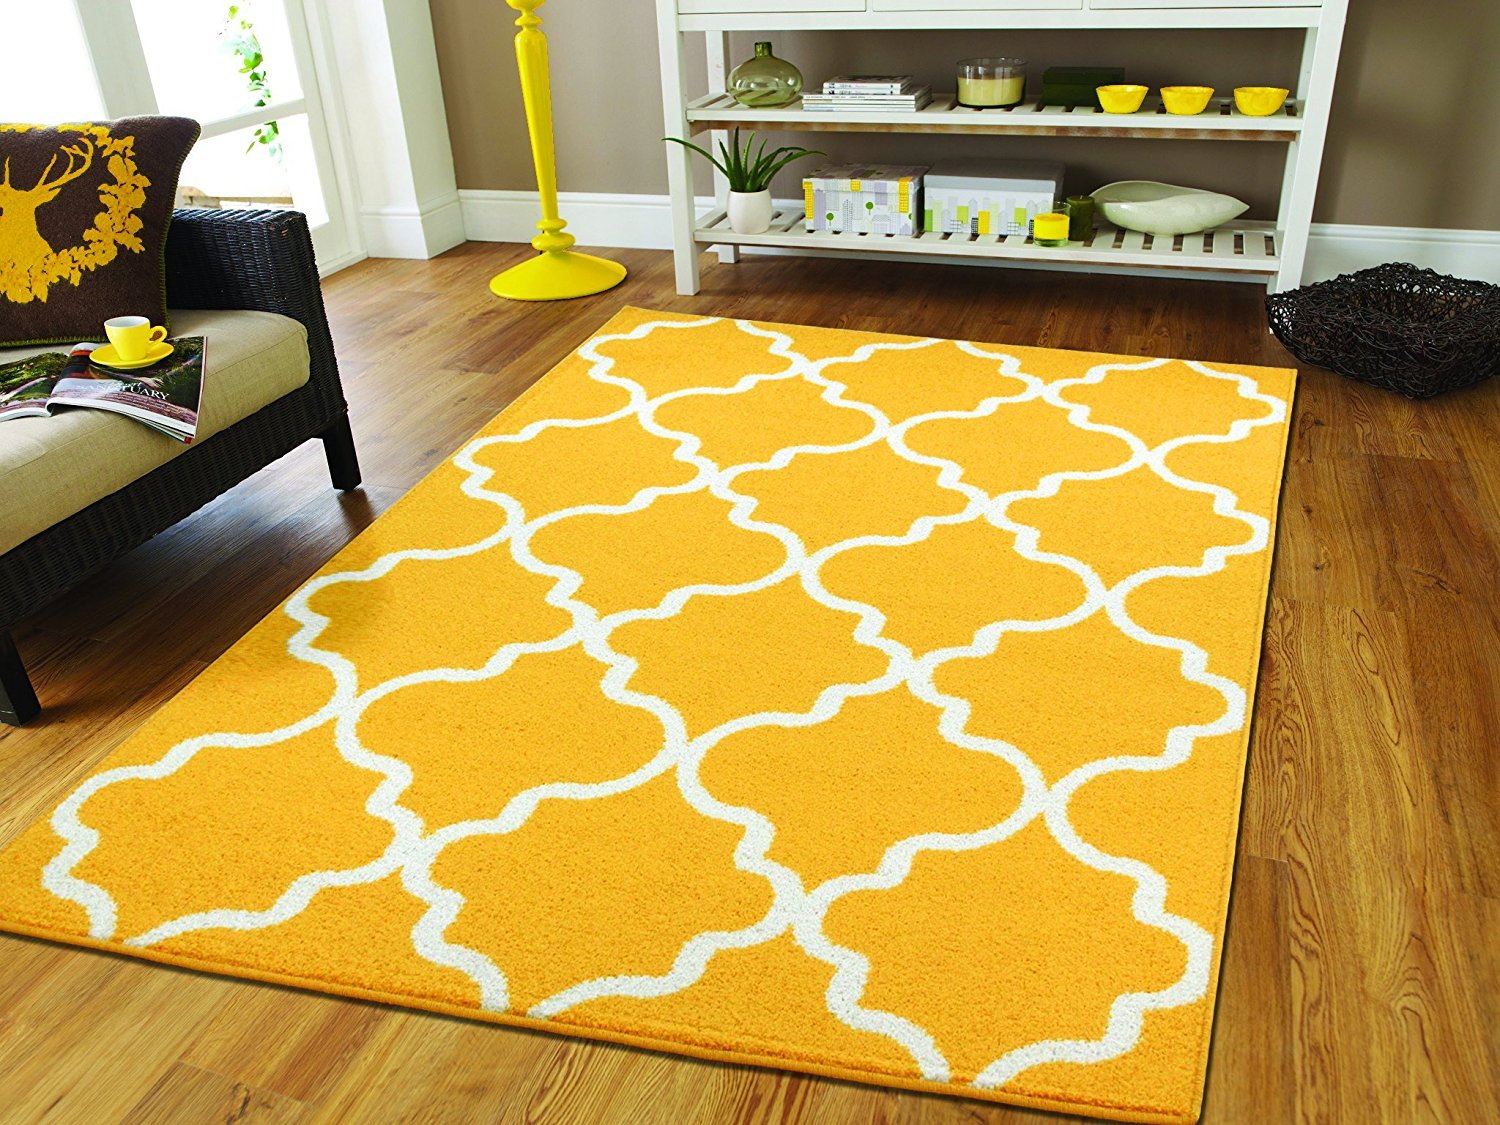 Large Yellow Rugs For Living Room 8x10 Morrocan Trellis Areu2026